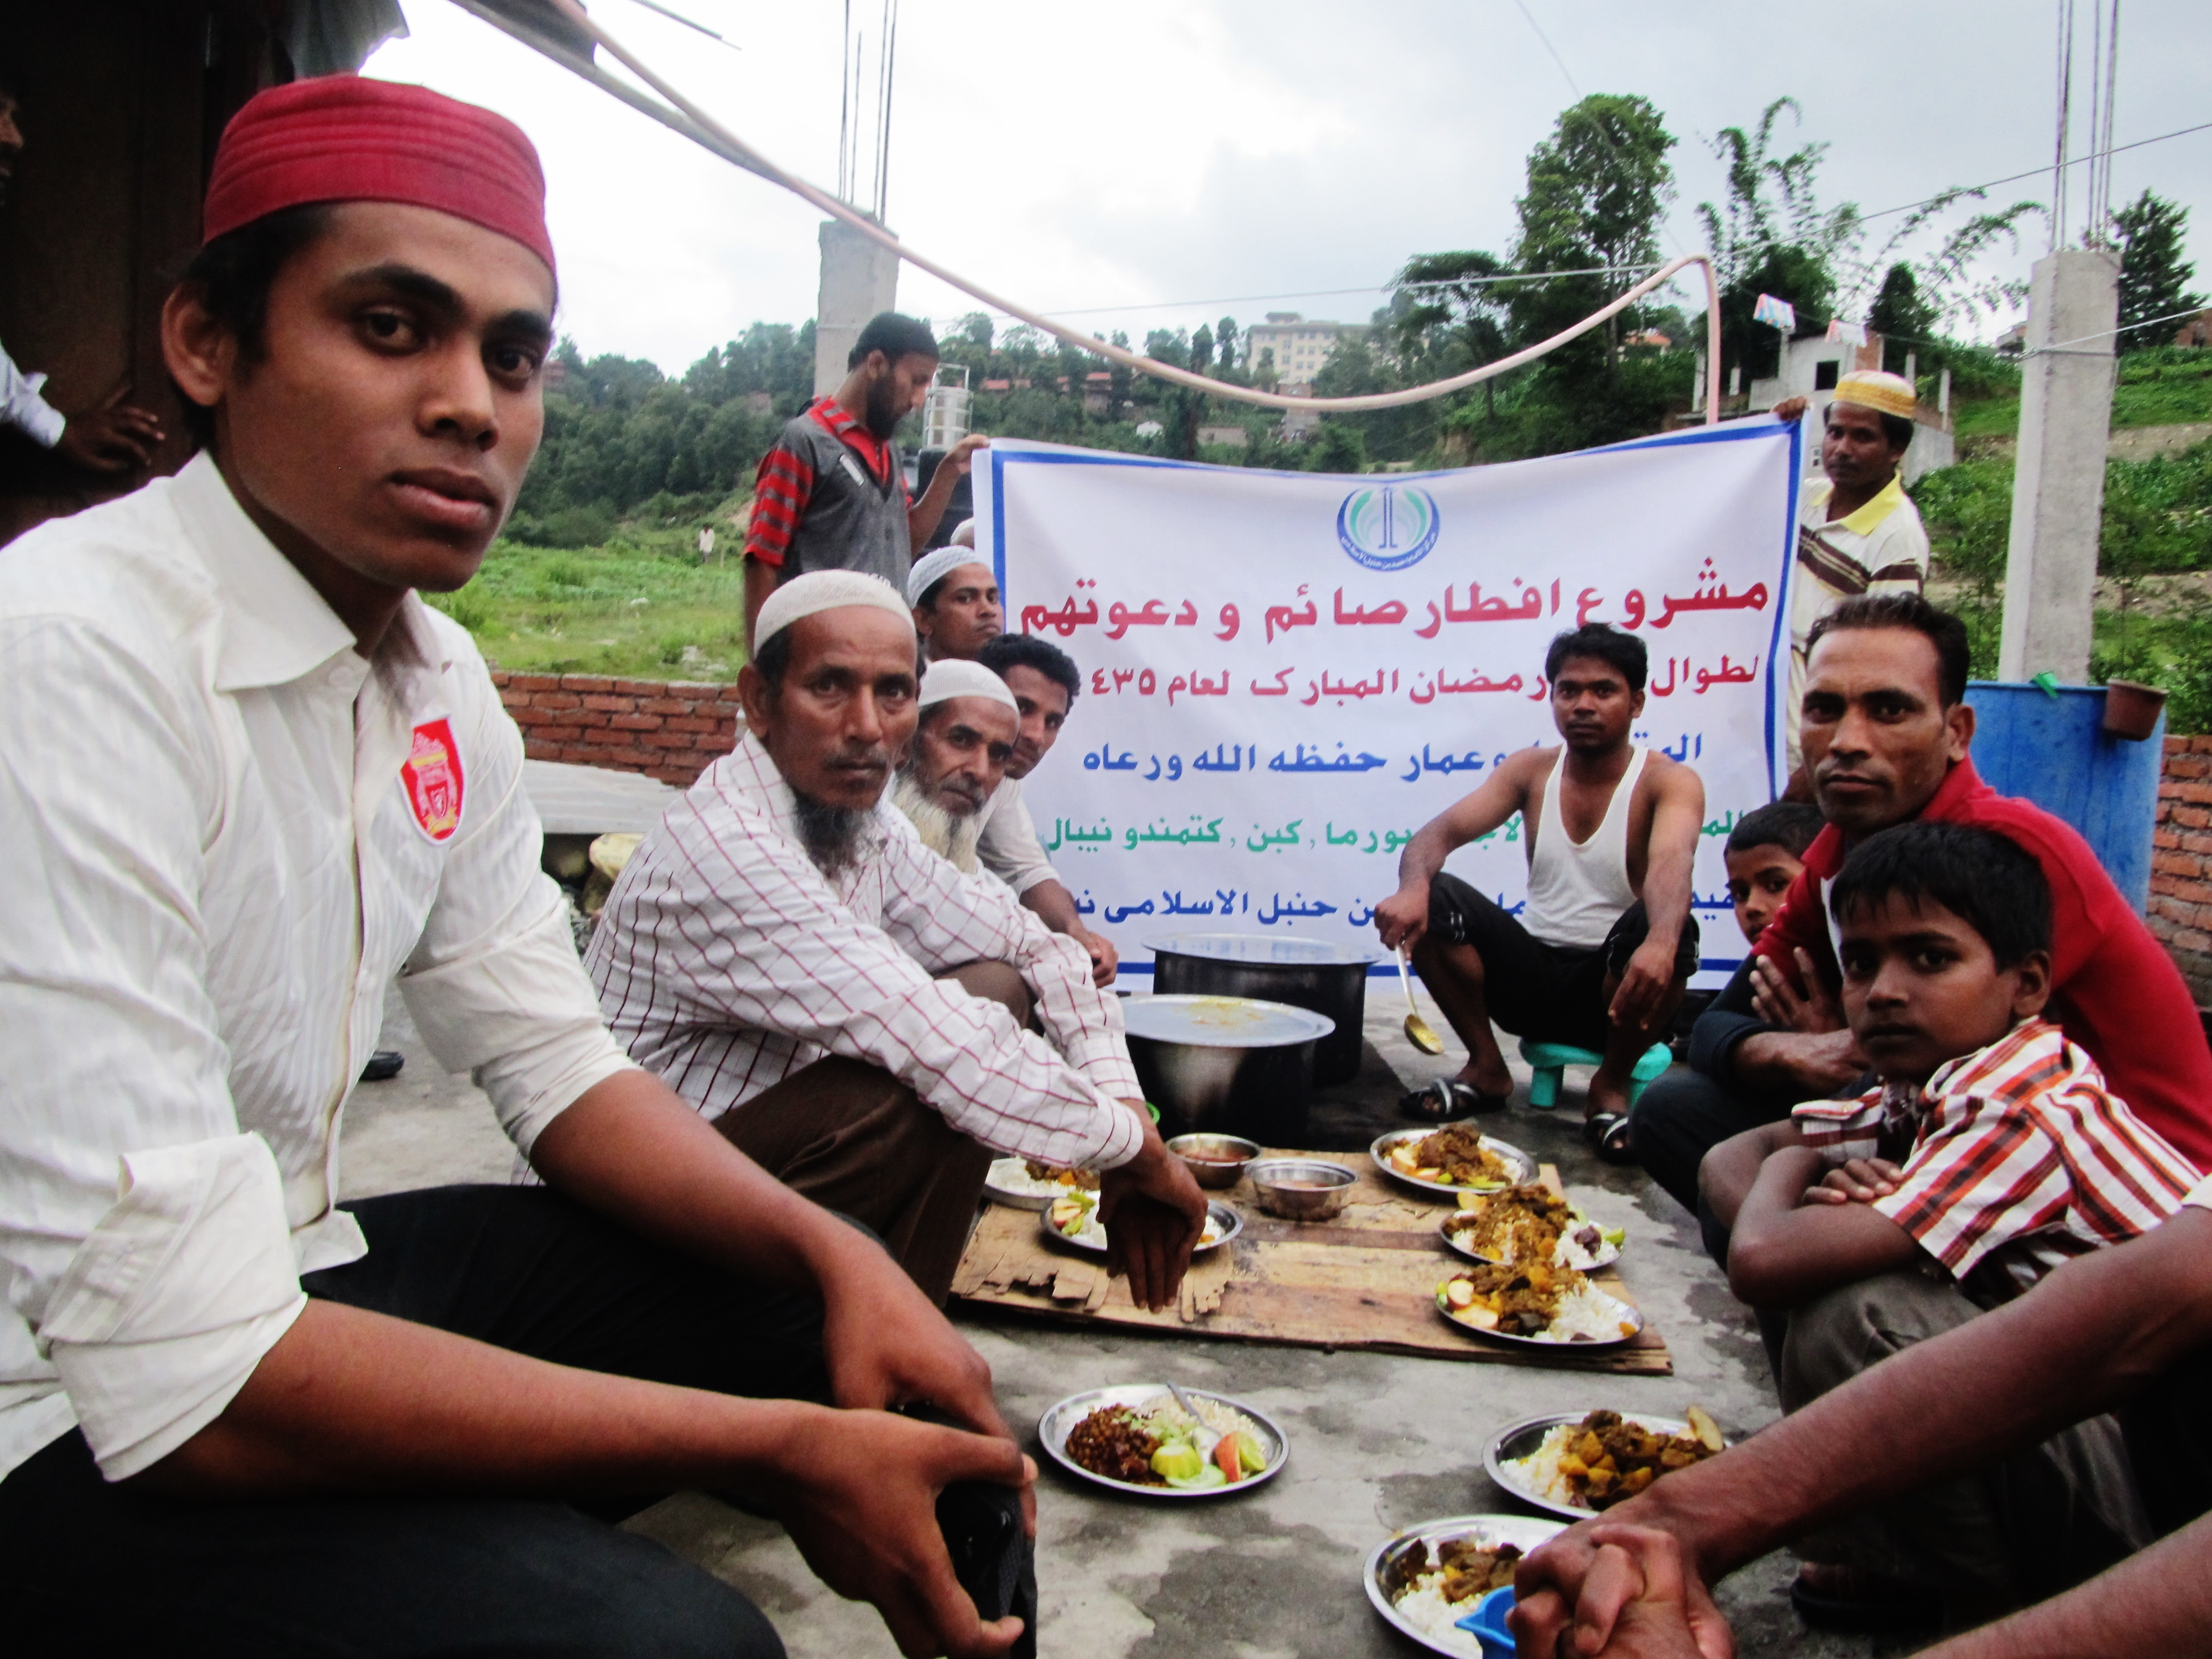 Hassan Hassan, left, with fellow Rohingya refugees on the outskirts of Kathmandu in July 2014